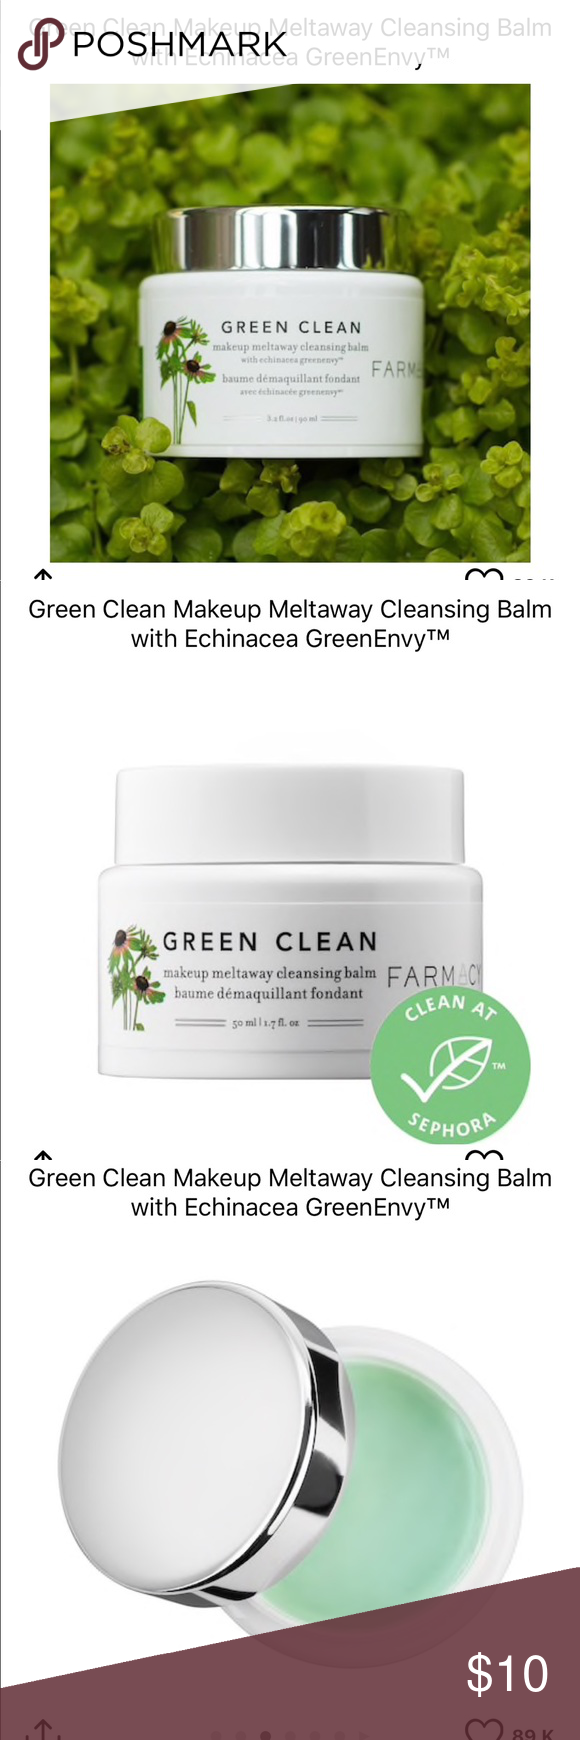 Farmacy Green Clean Makeup Meltaway Cleanser Clean